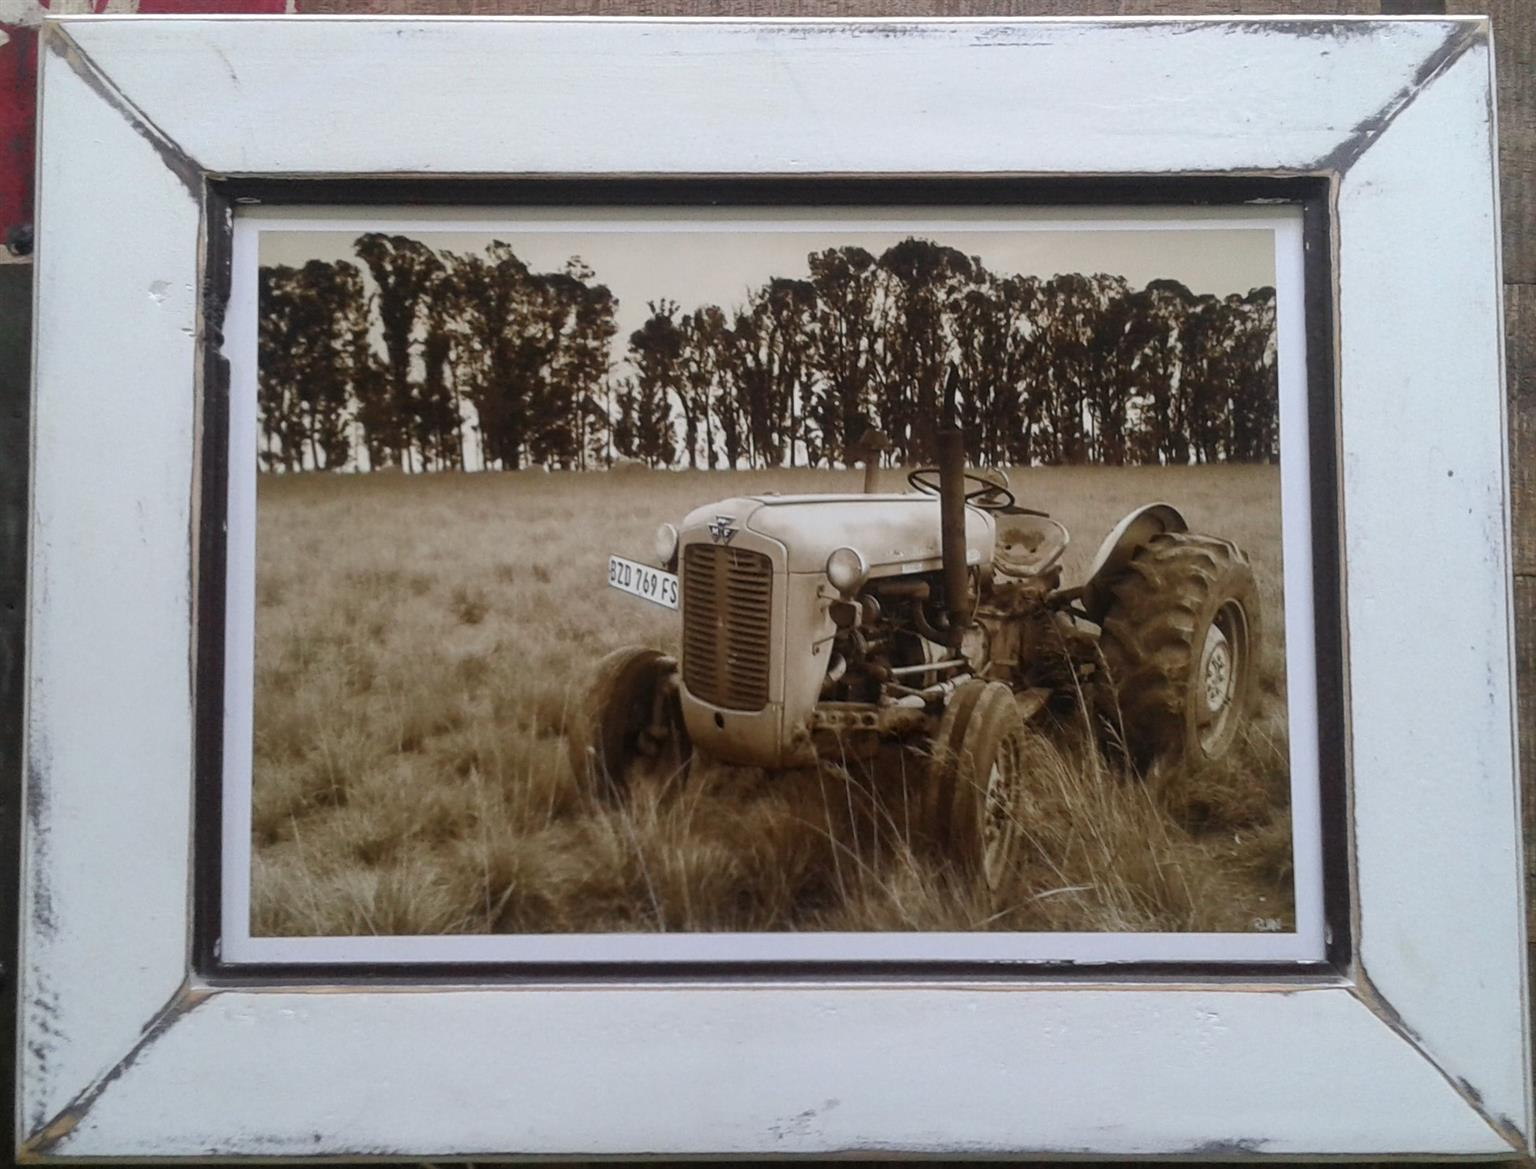 Framed Print: Tractor. Wall art. Home decor.